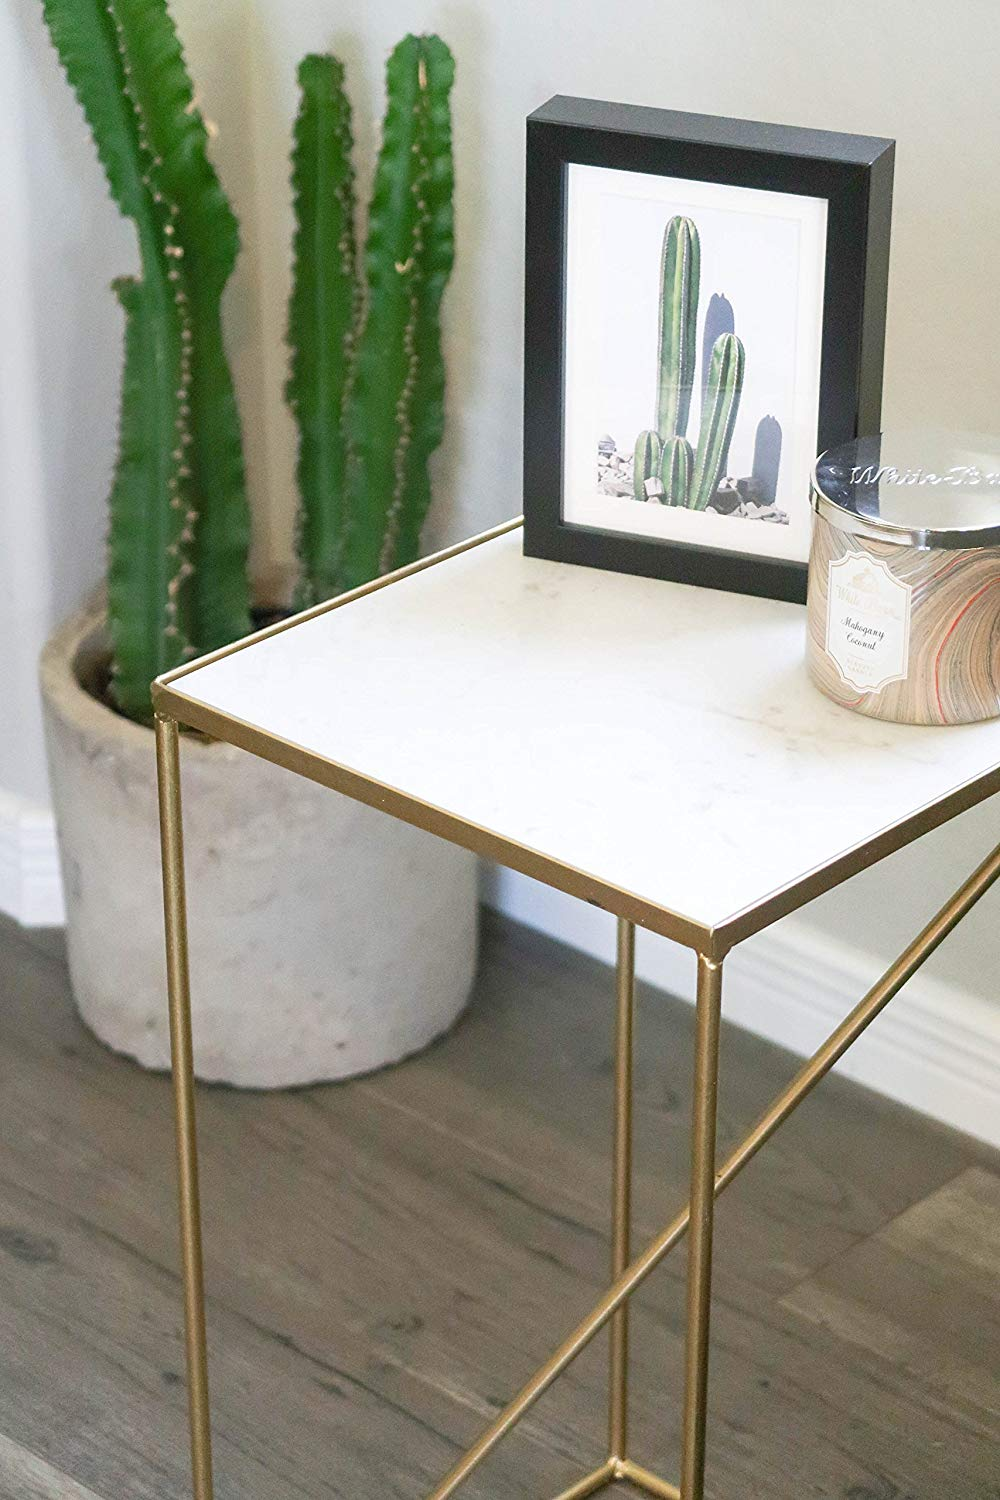 tile accent table find line dvxau modern outdoor tables get quotations tyle metal indoor night plant stand end black gold white teal copper furniture best dale tiffany dragonfly